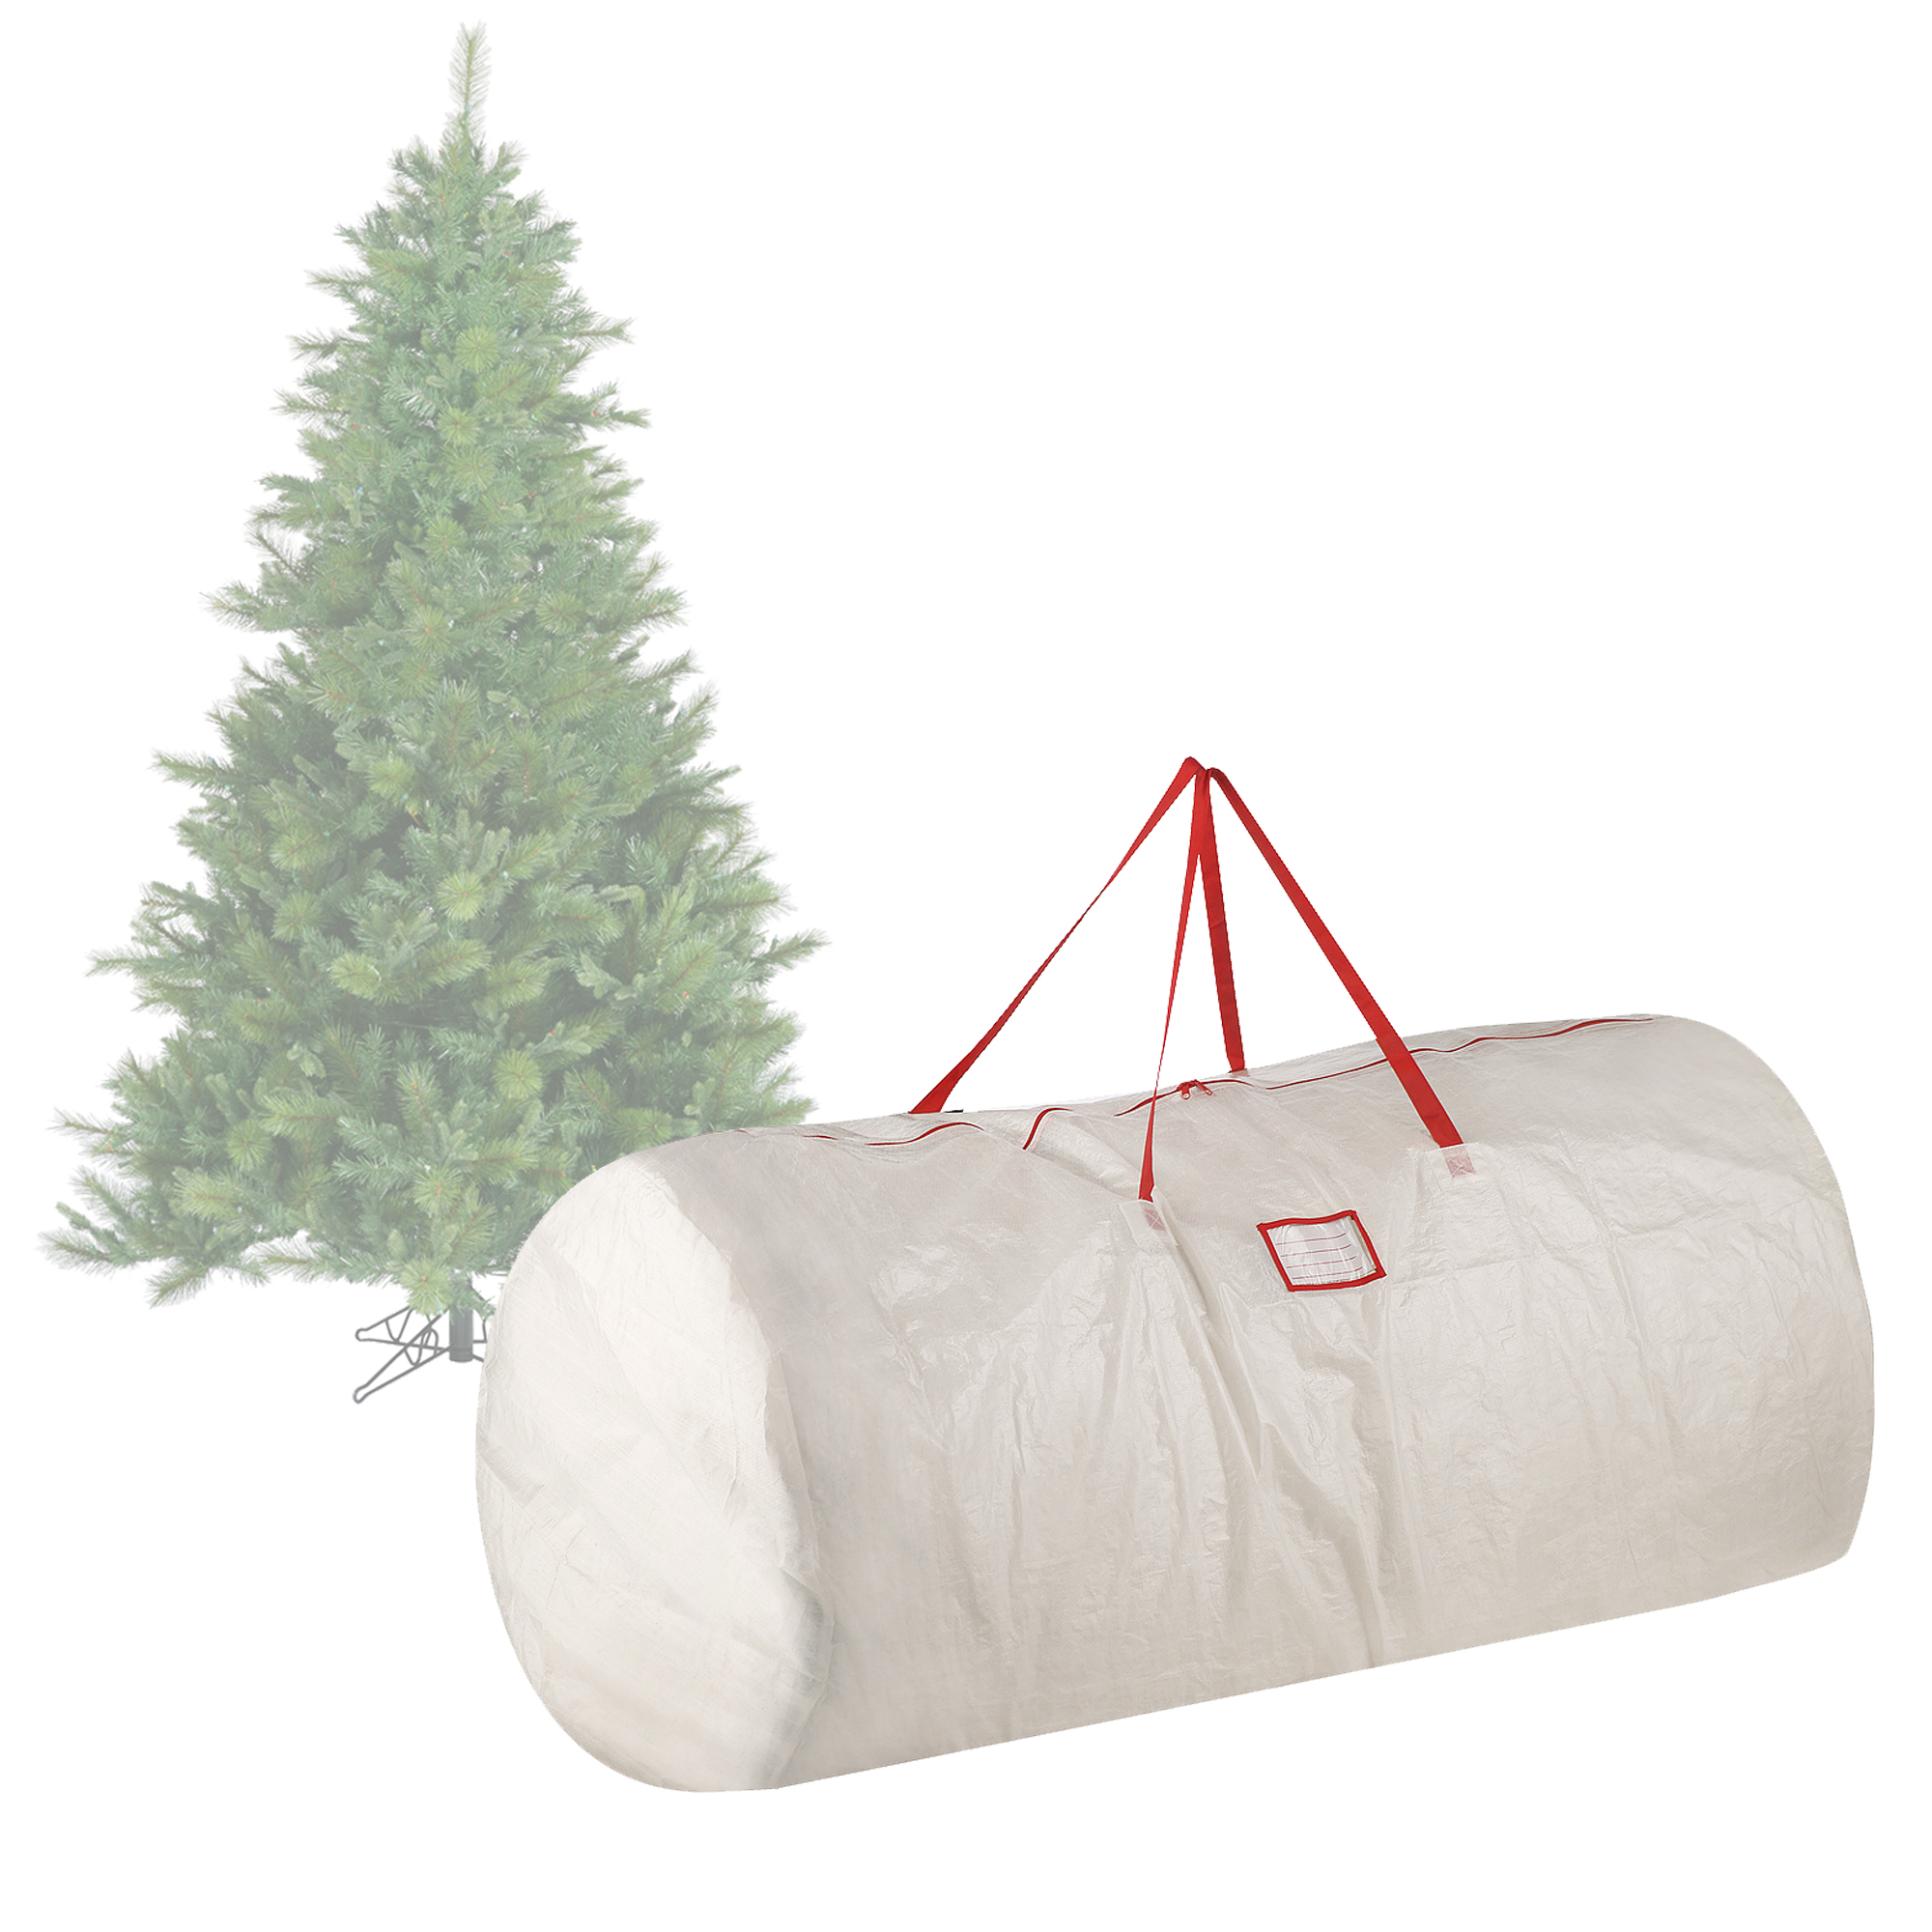 Christmas Tree Bags.Elf Stor Premium White Holiday Christmas Tree Storage Bag Large For 9 Foot Tree